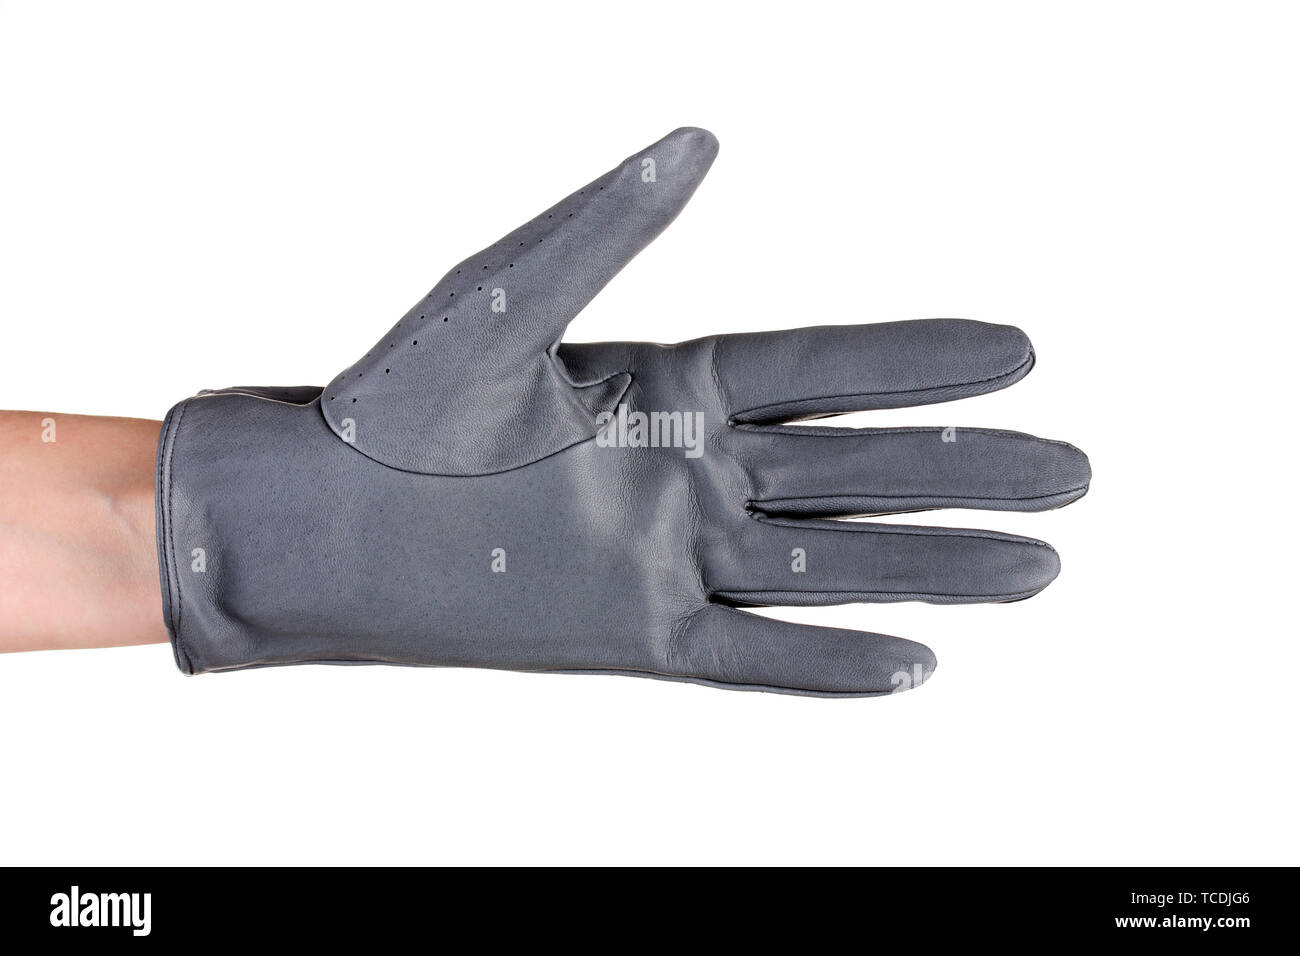 62c65b98d One Leather Glove Isolated On Stock Photos & One Leather Glove ...